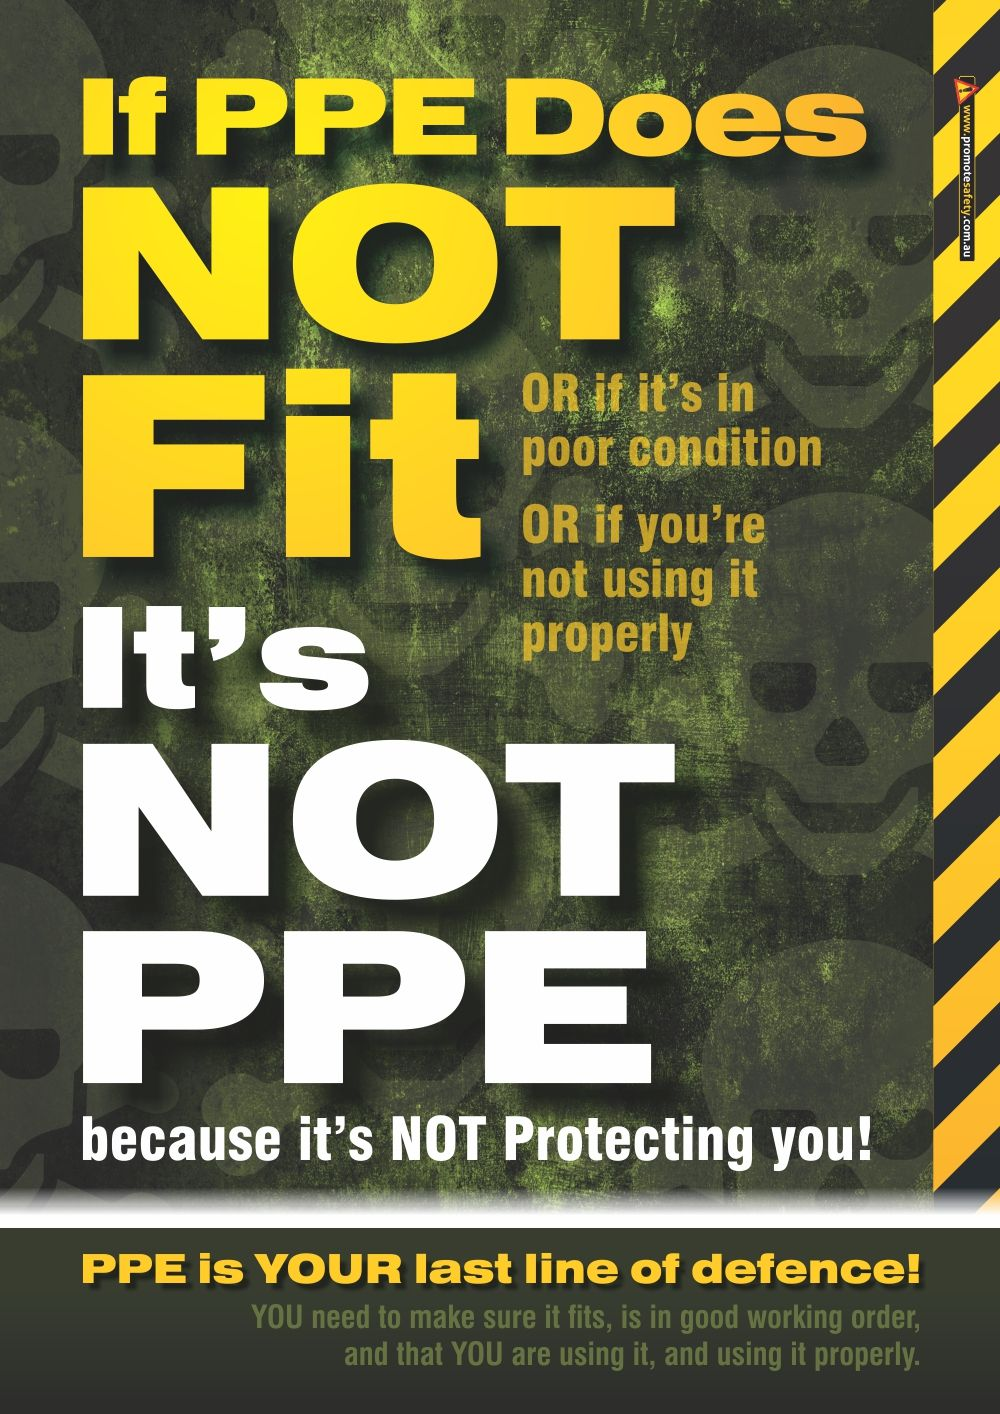 A3 size Workplace Safety Poster reminding workers of the